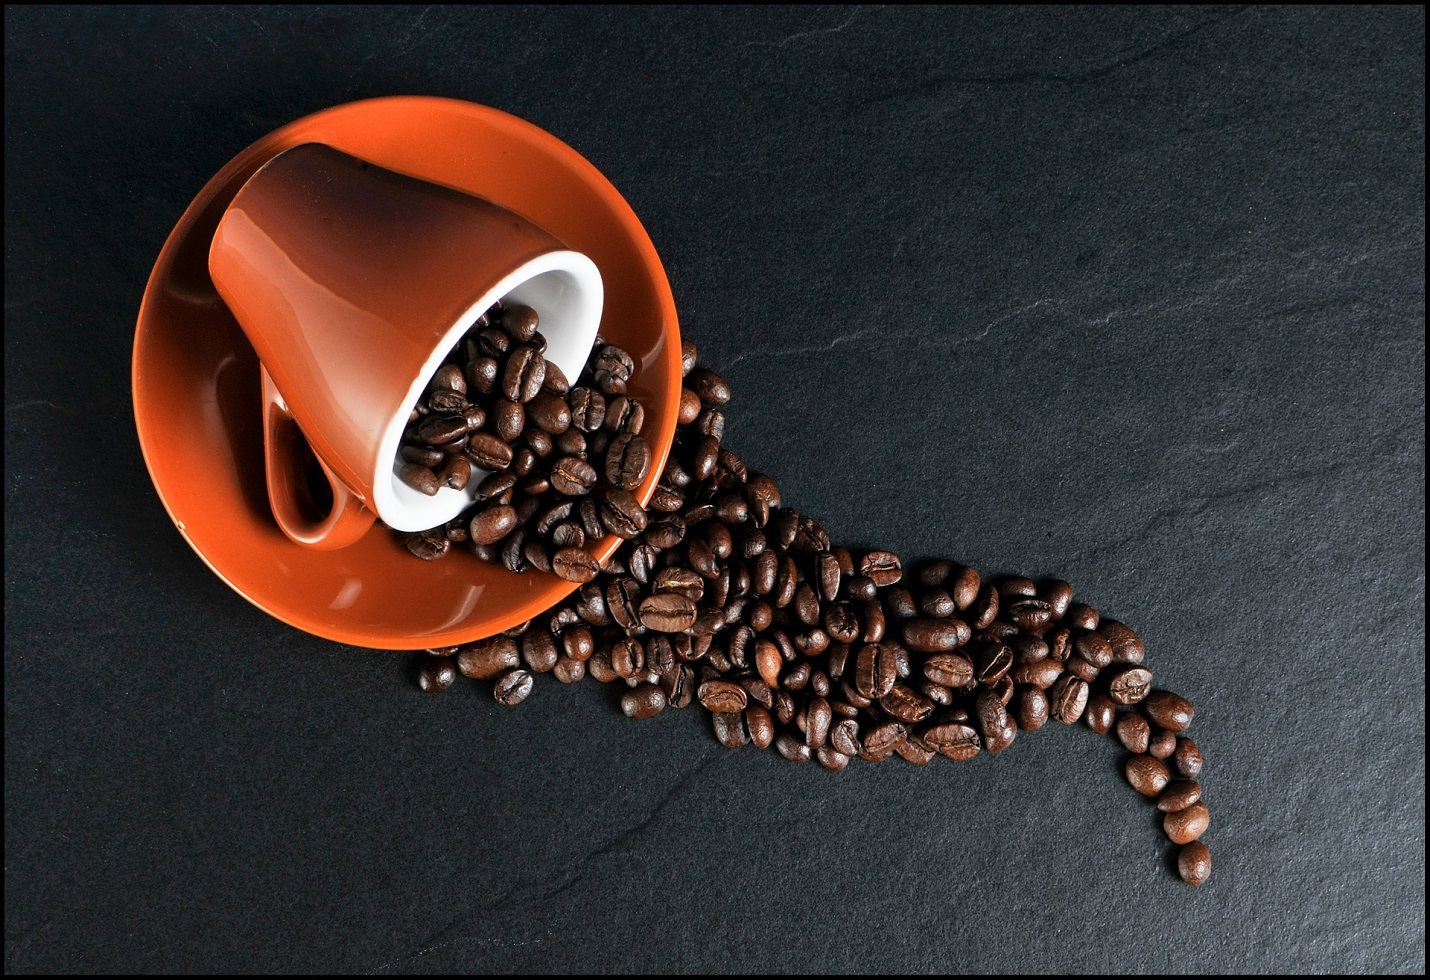 Coffee lovers rejoice. Read the health benefits of consuming coffee